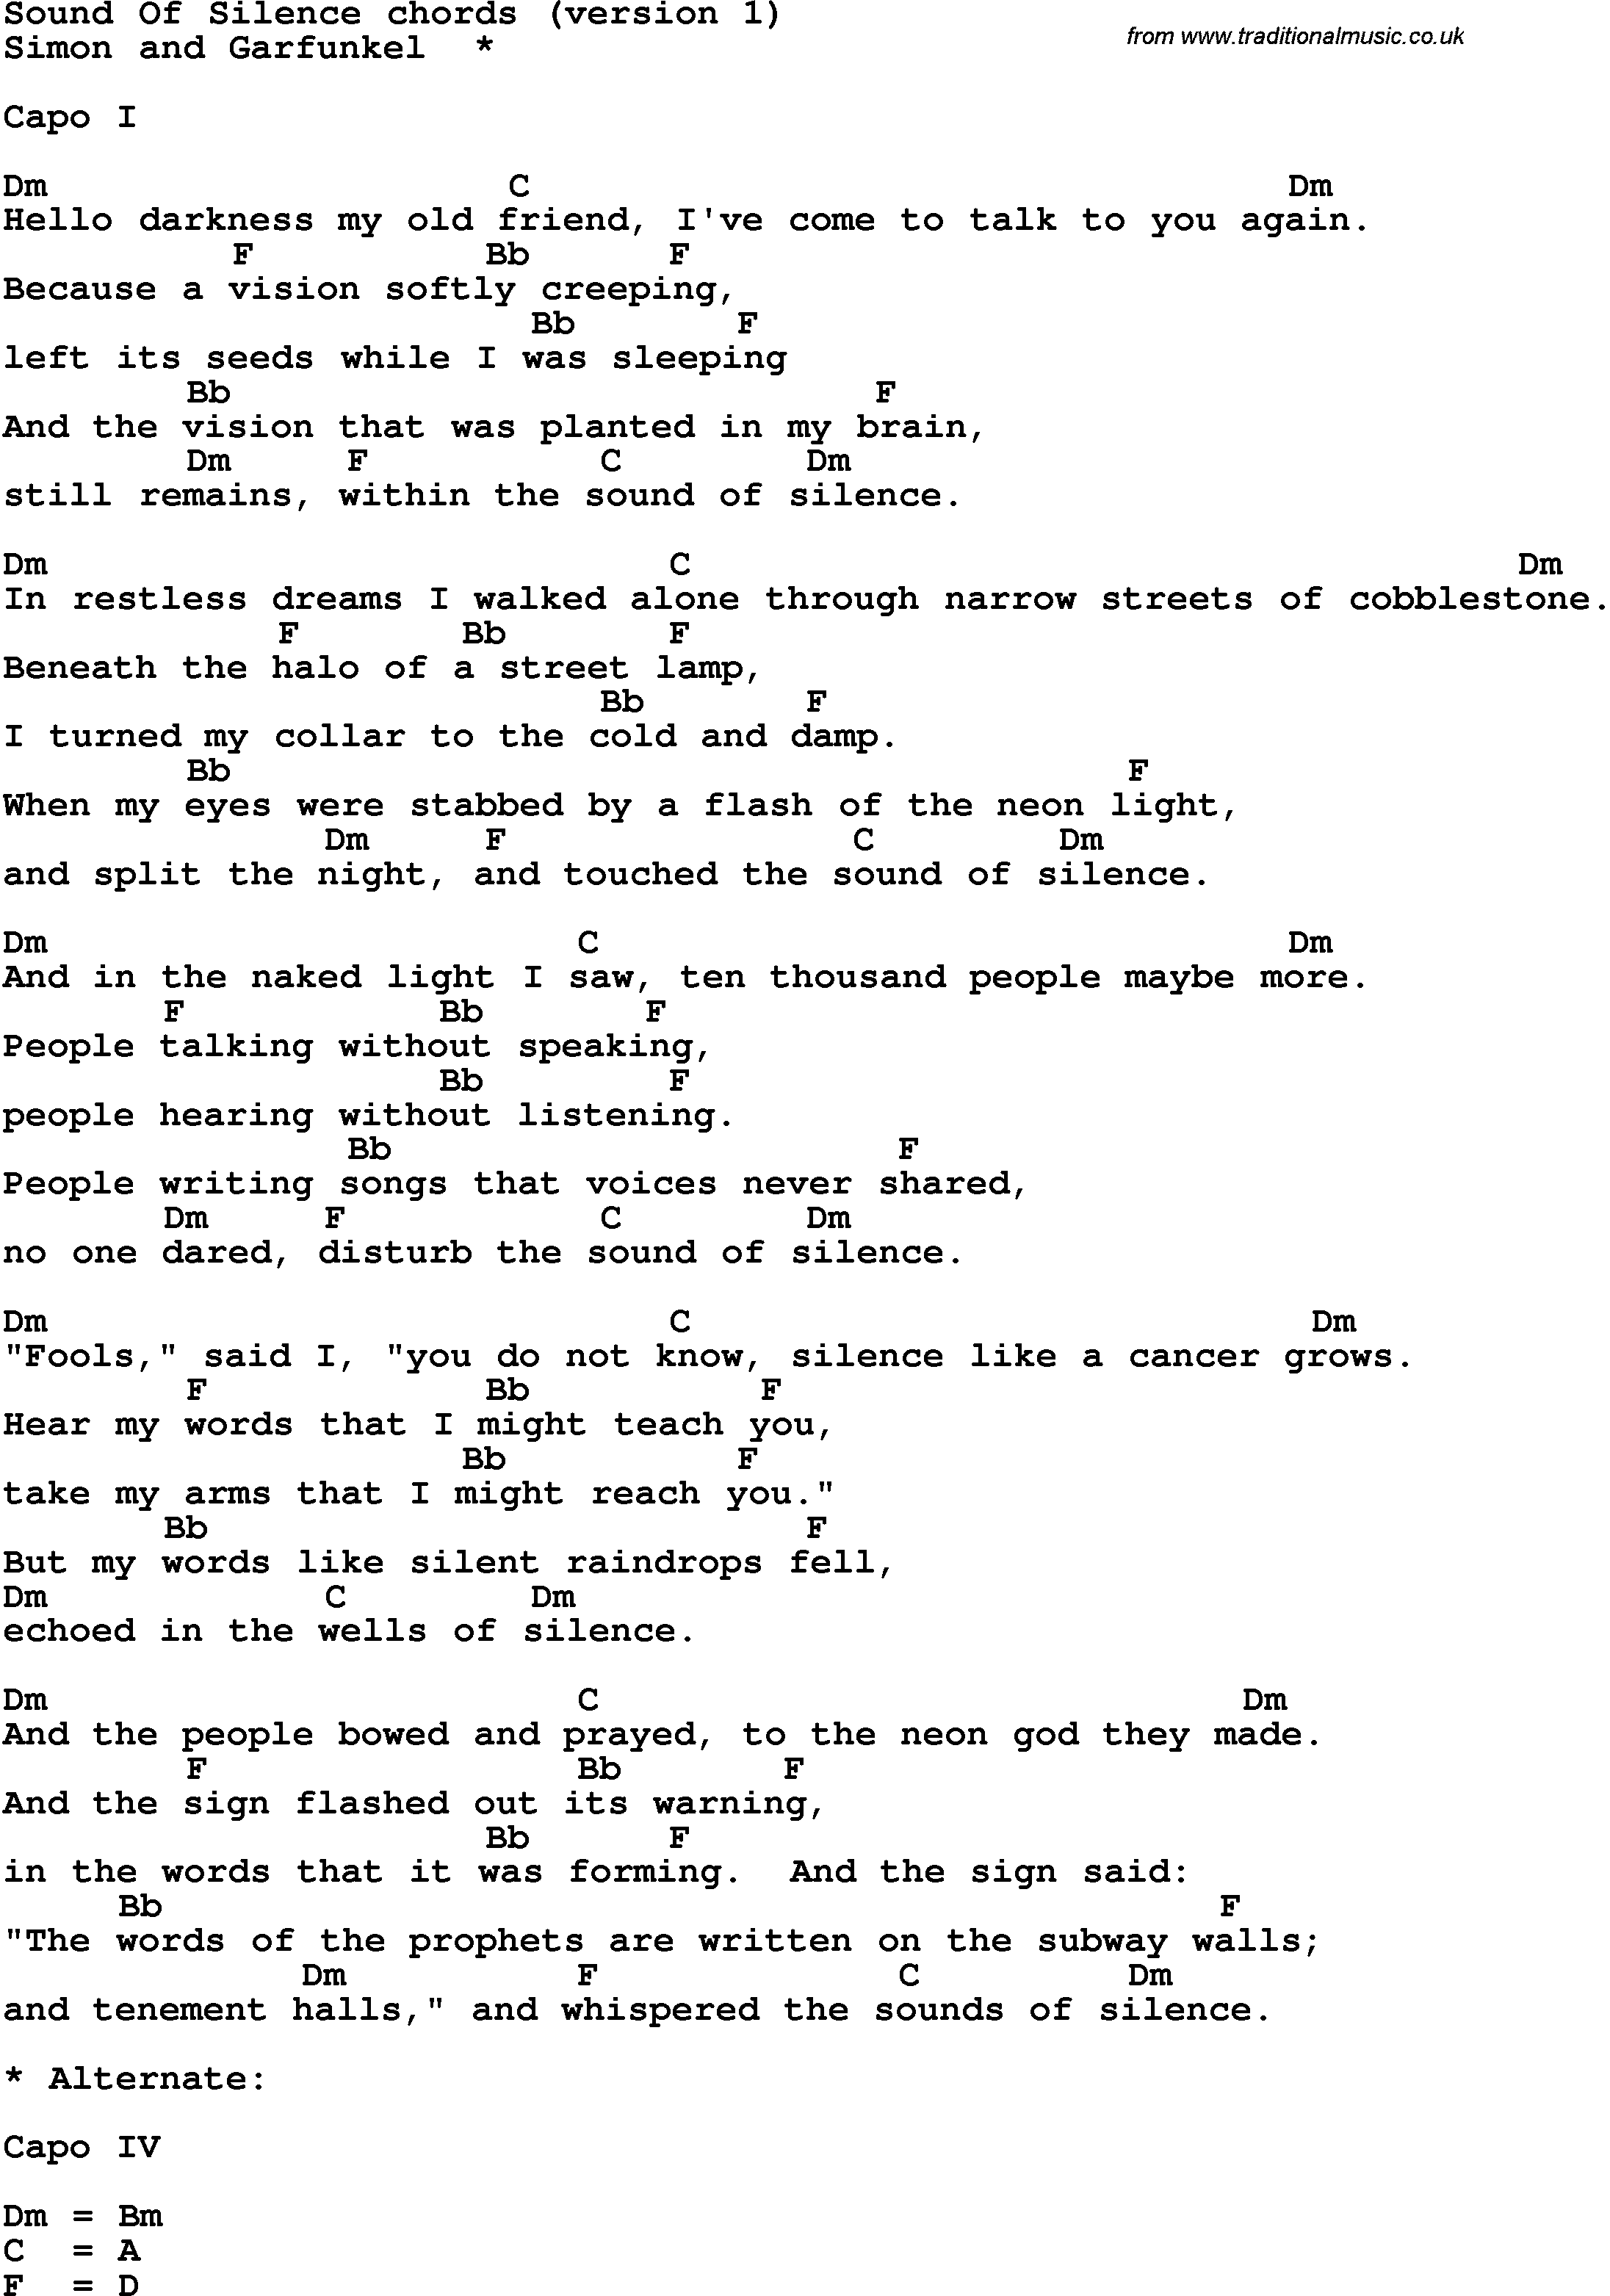 Song Lyrics With Guitar Chords For Sound Of Silence Guitar